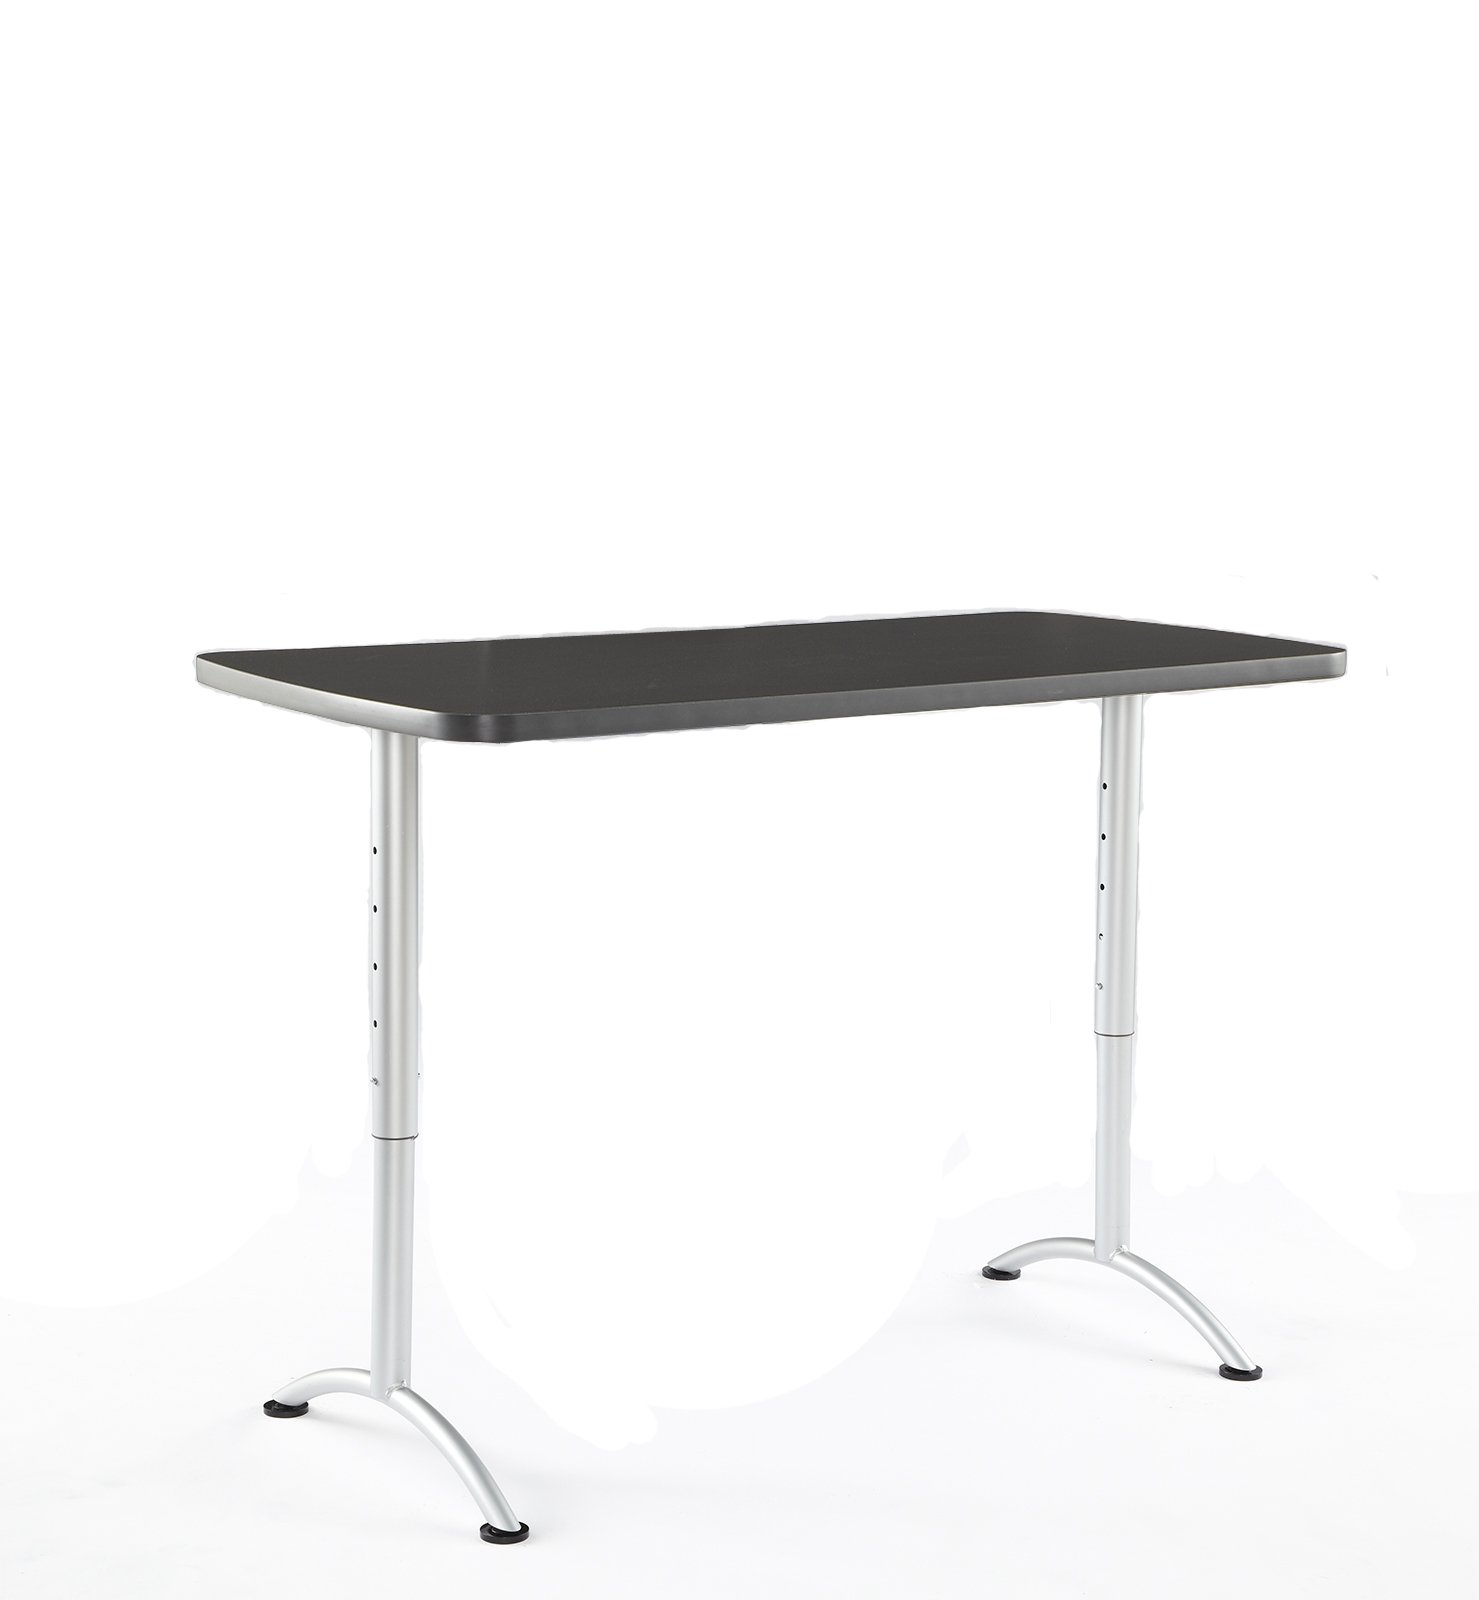 Iceberg ICE69317 ARC 5-foot Adjustable Height Rectangular Conference Table, 30'' x 60'', Graphite/Silver Leg by Iceberg